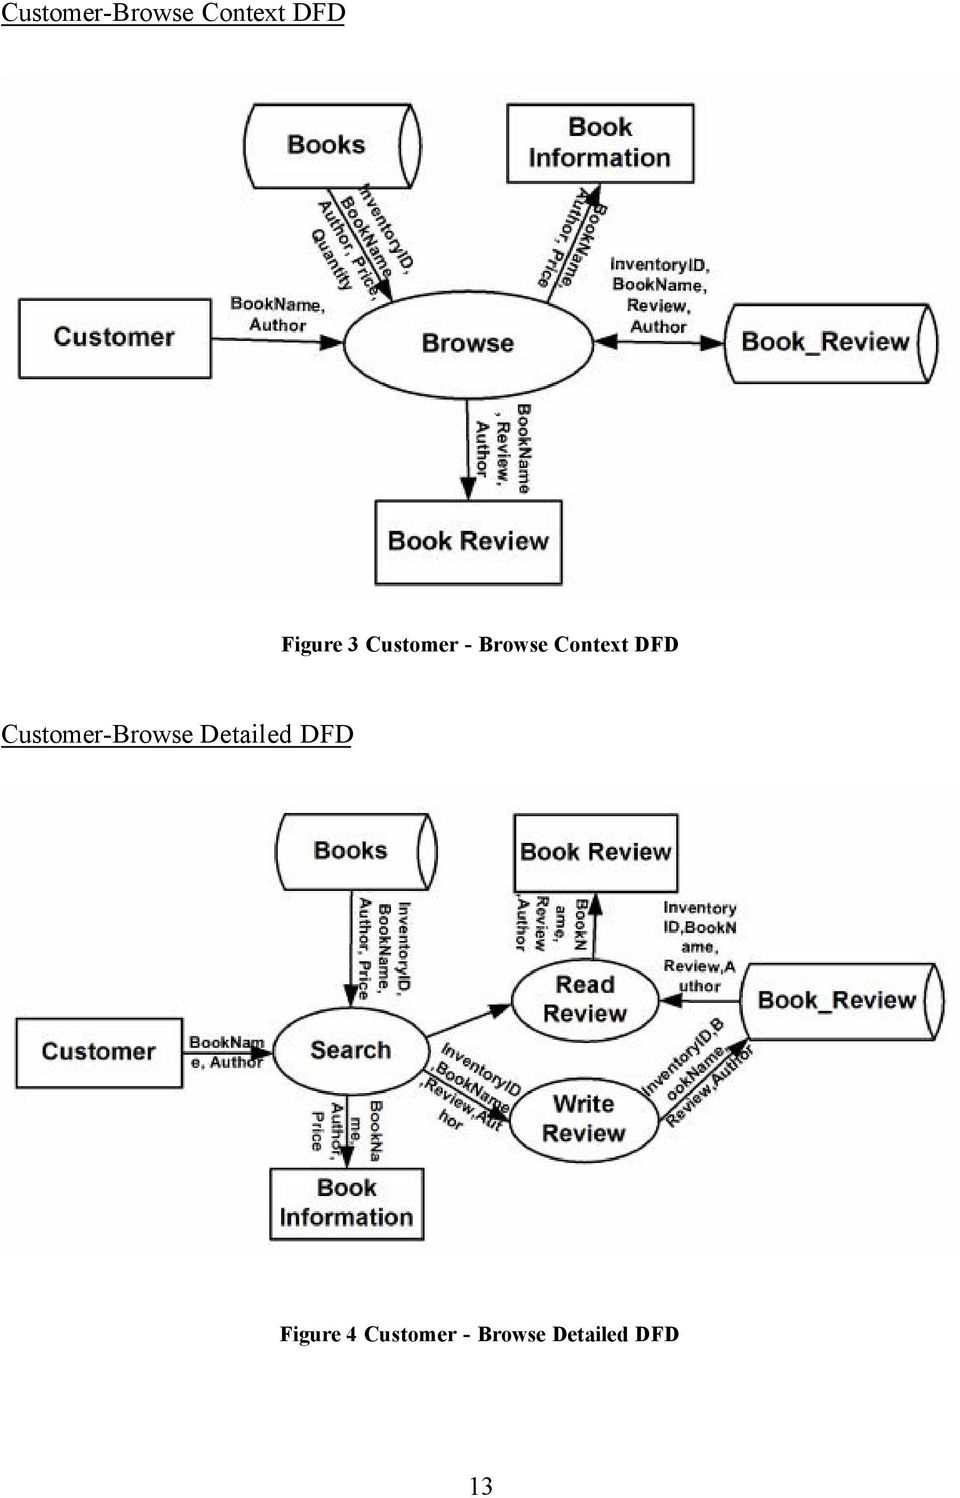 Customer-Browse Detailed DFD